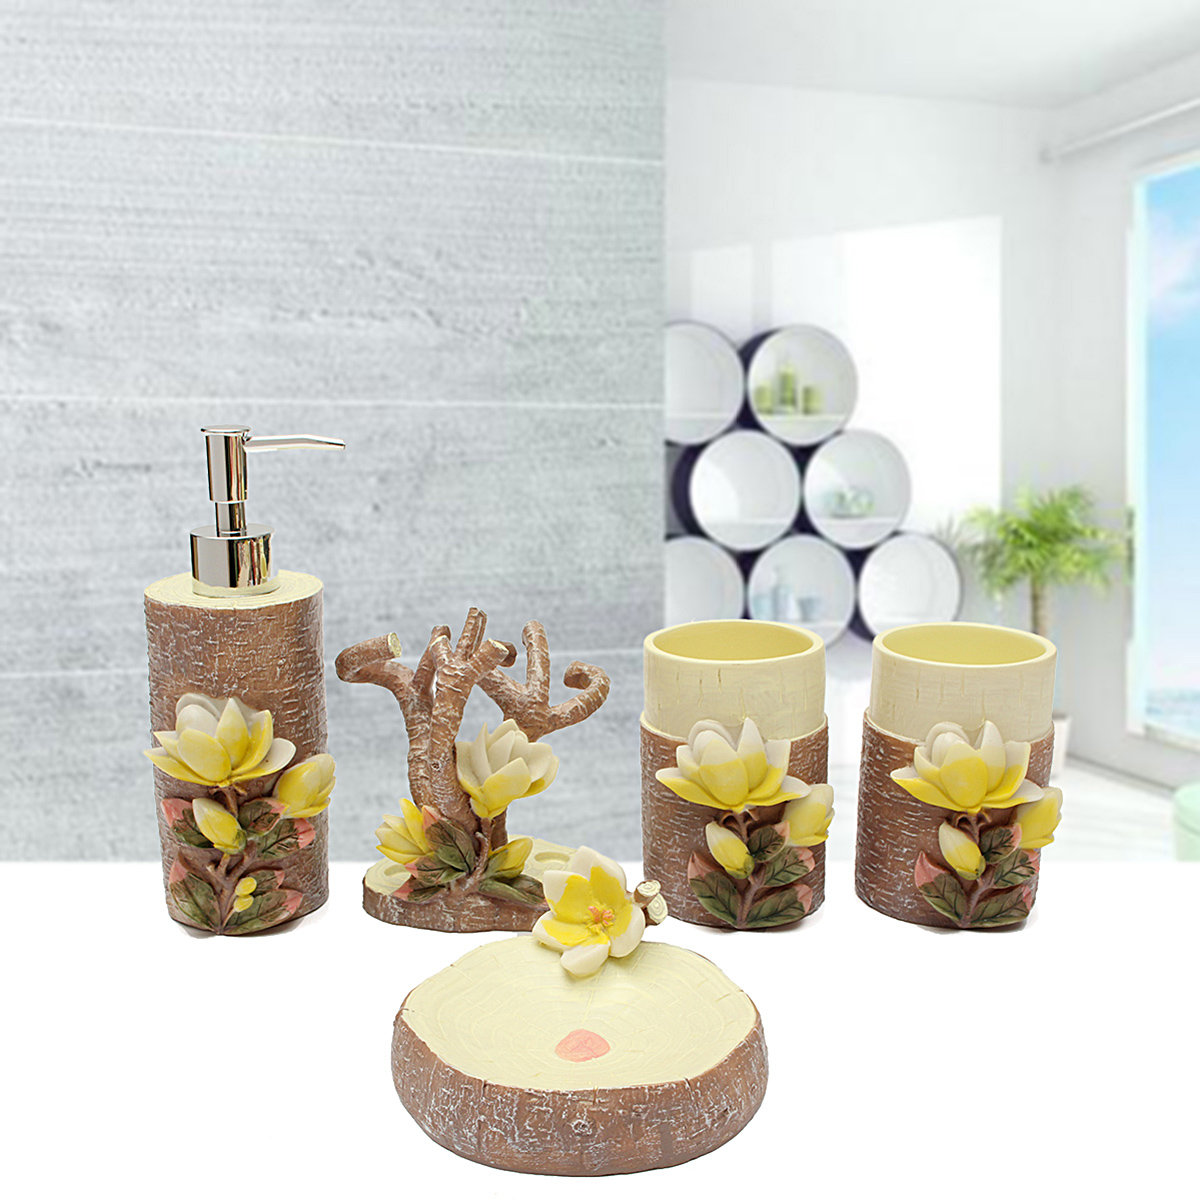 5Pcs 3D Magnolia Scalpture Bathroom Accessories Soap Holder ...